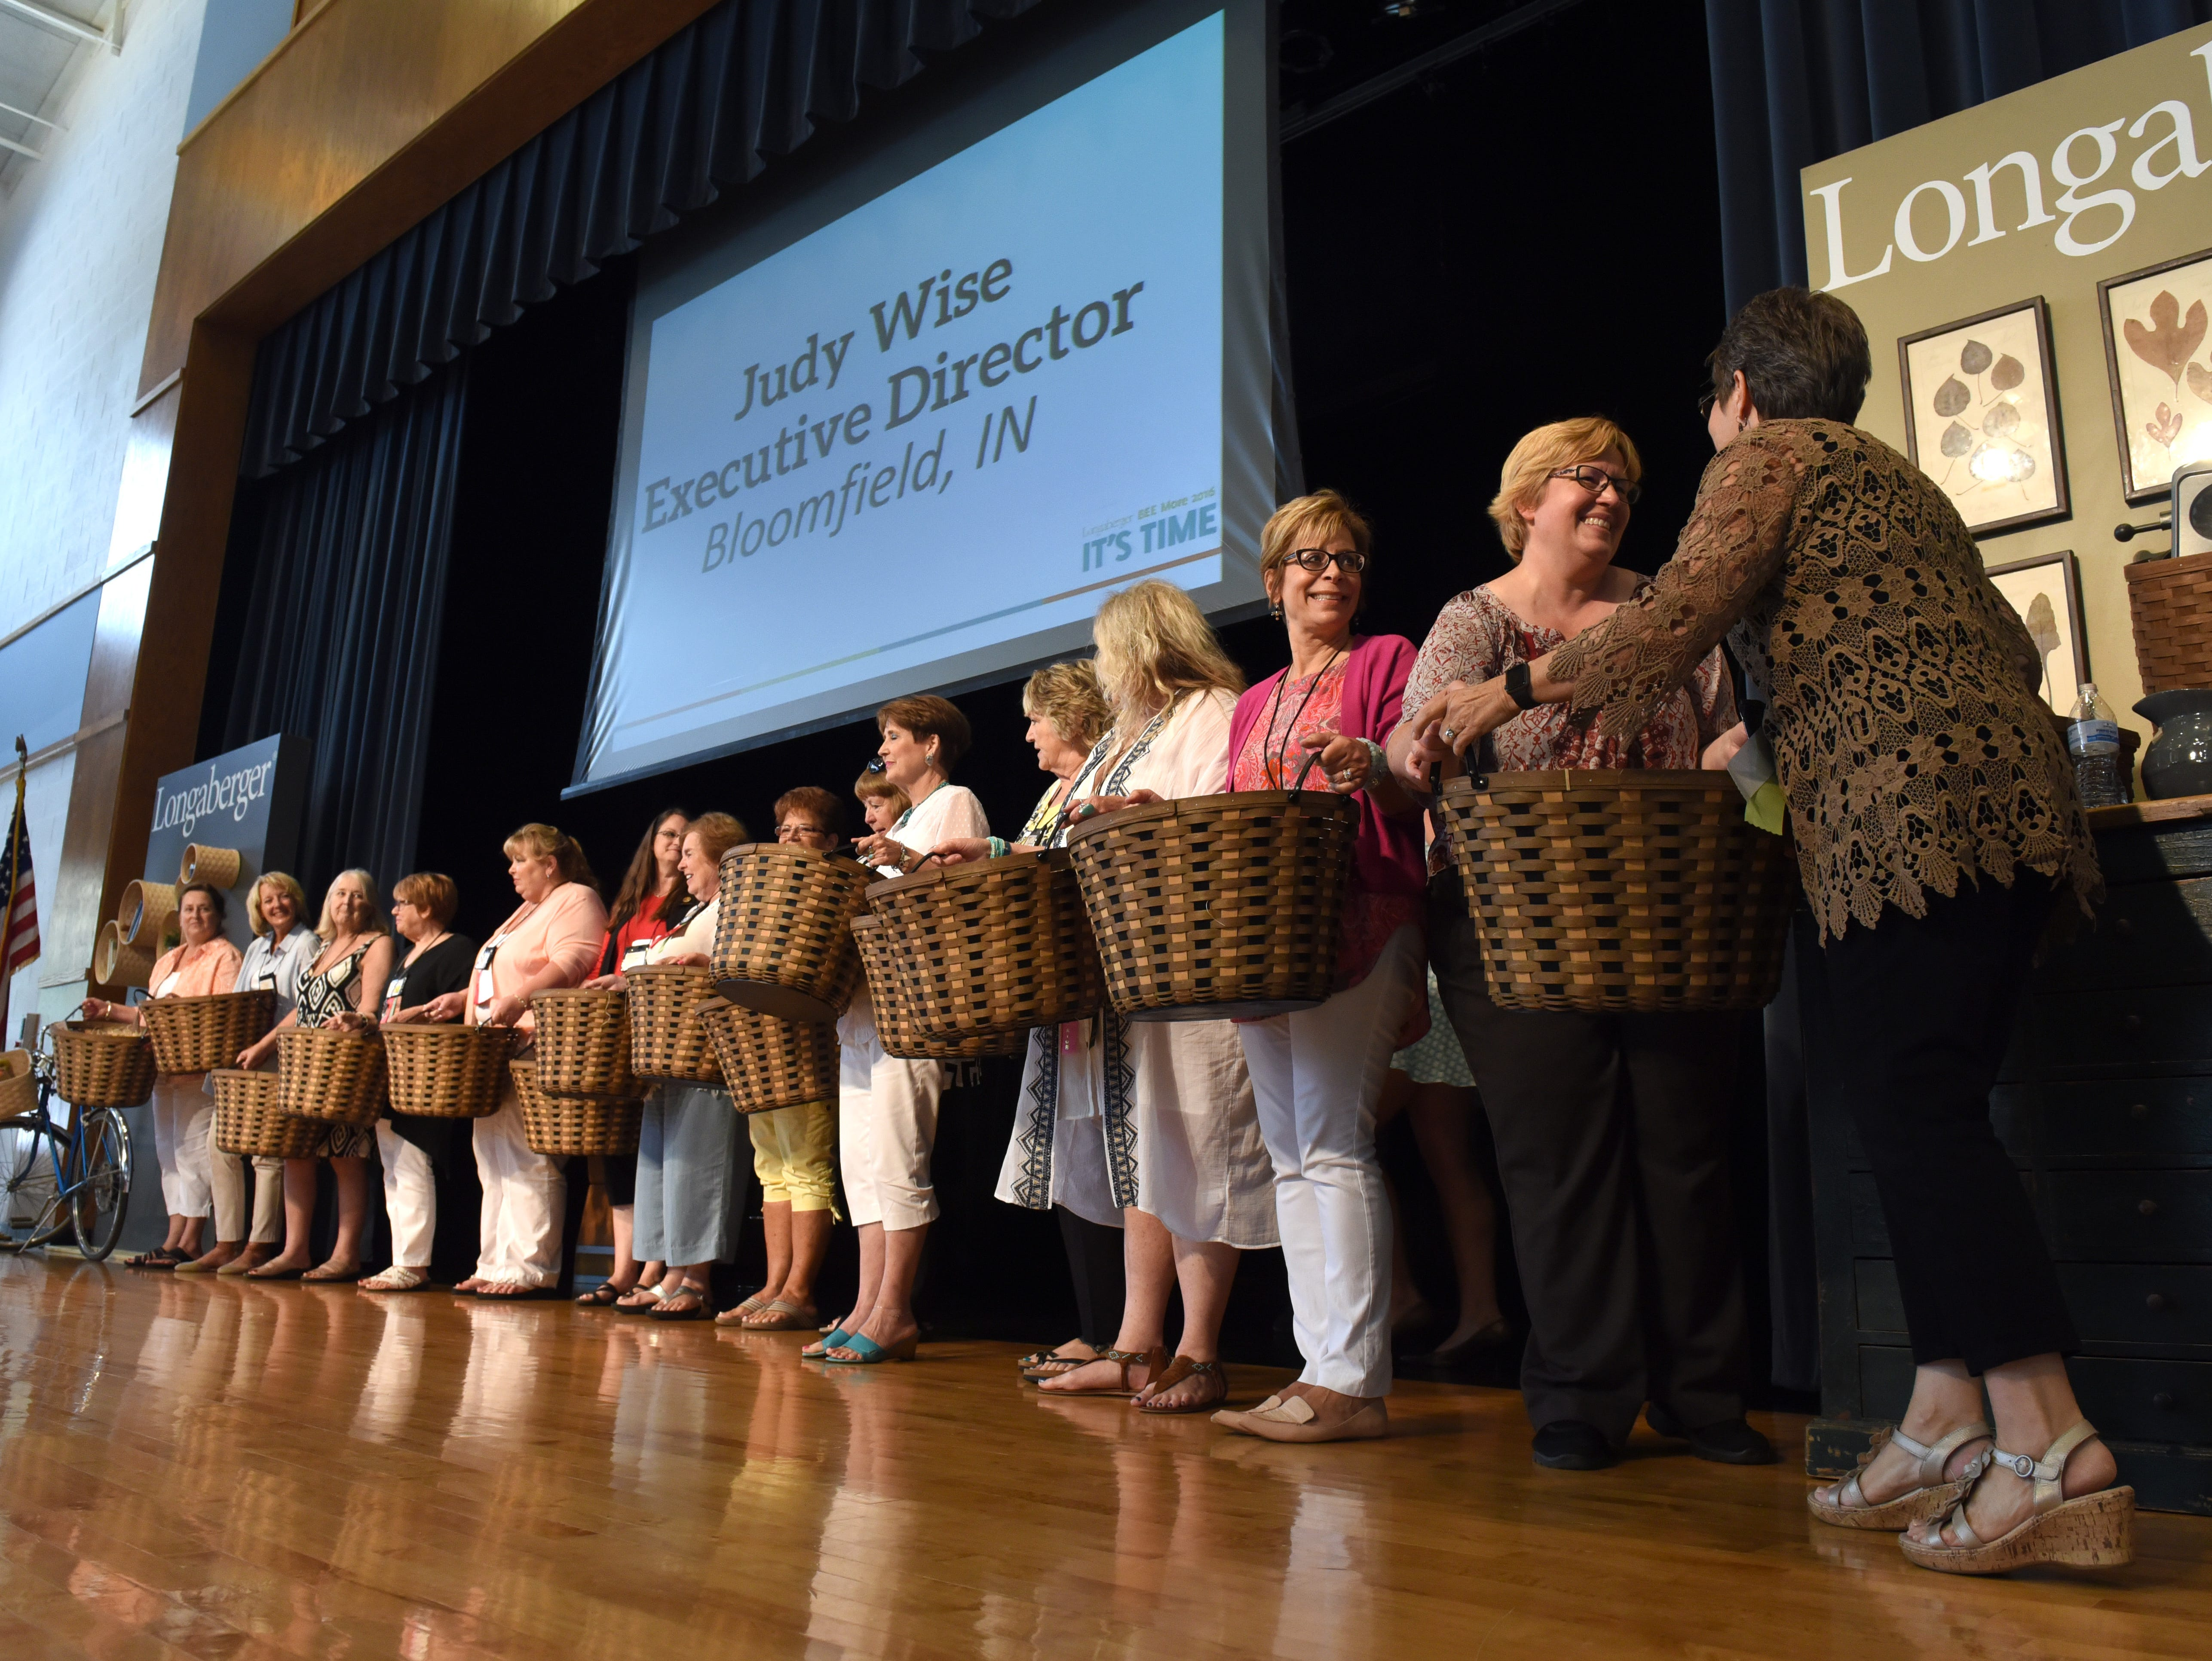 Longaberger consultants are given honorary baskets for becoming company directors during the Longerberger Bee at Tri-Valley High School.